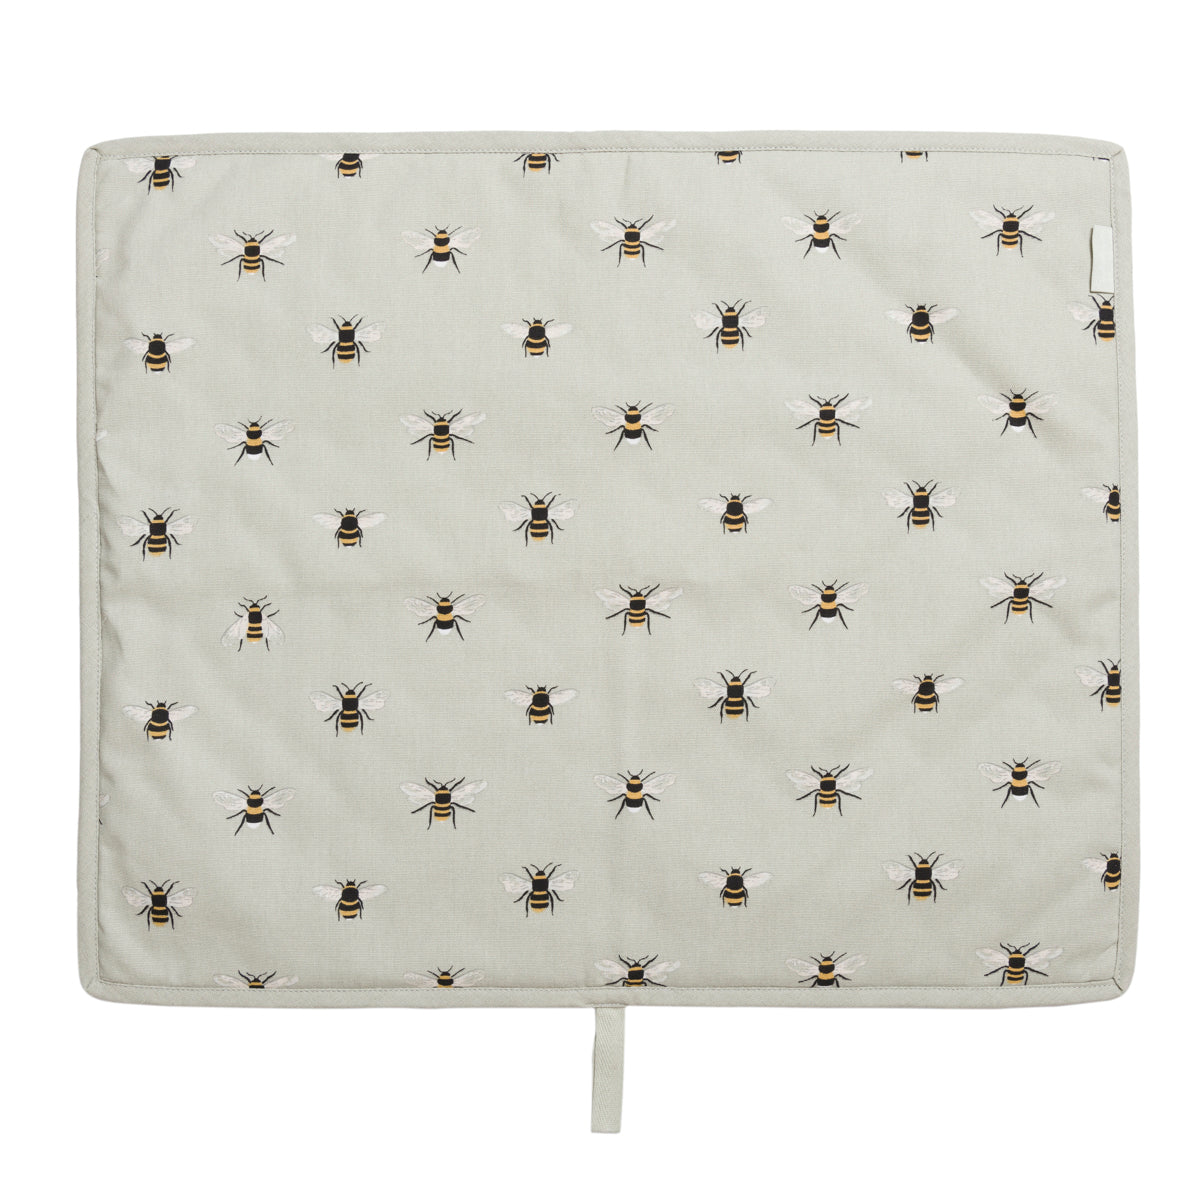 This hob cover is pale green with Sophie Allport's popular bee design featured and perfect for everhots.